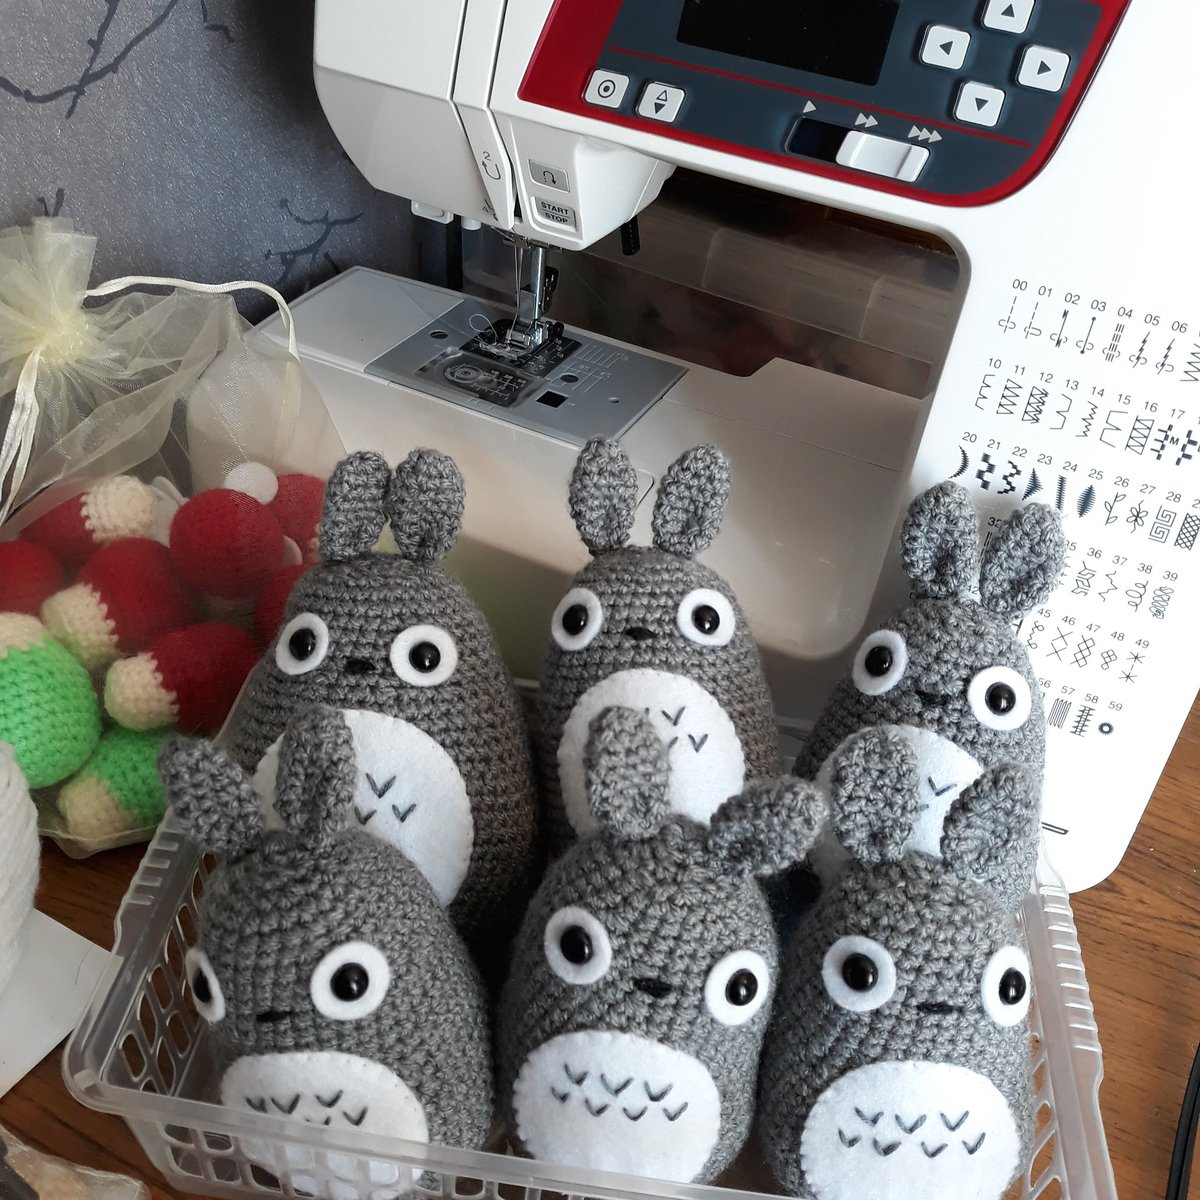 Totoro Free Crochet Pattern | Crochet patterns, Crochet crafts ... | 1200x1200